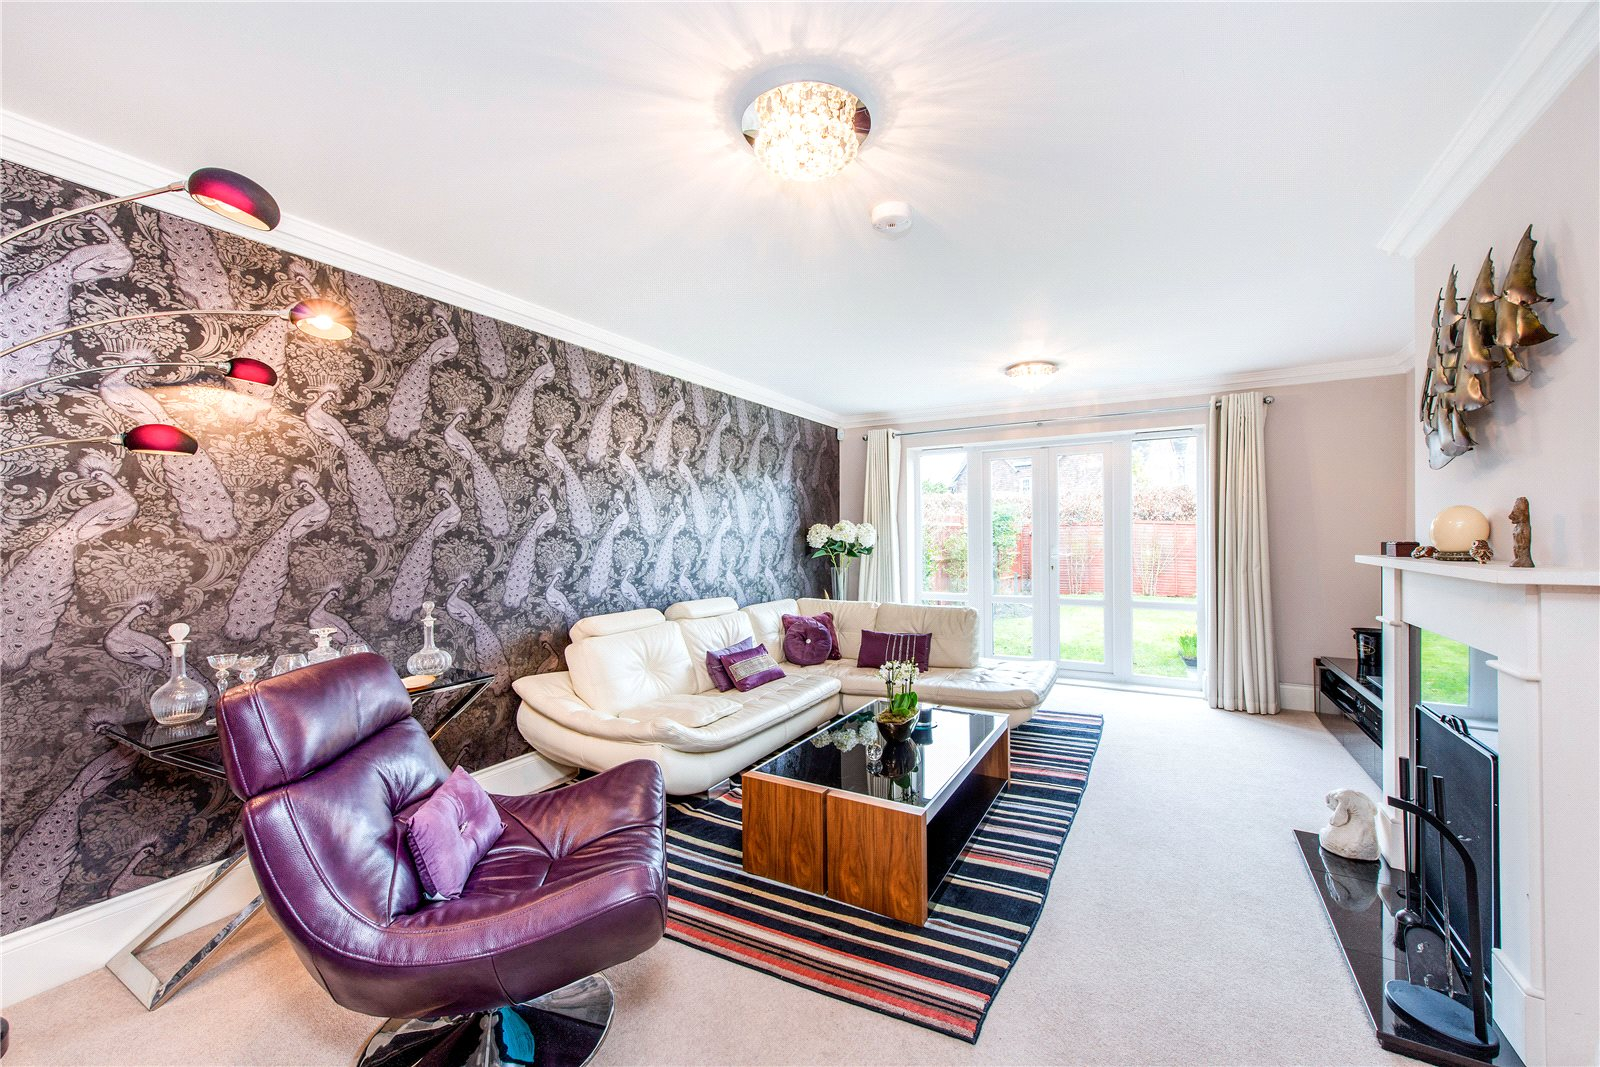 Additional photo for property listing at Ethorpe Crescent, Gerrards Cross, Buckinghamshire, SL9 Gerrards Cross, Inglaterra